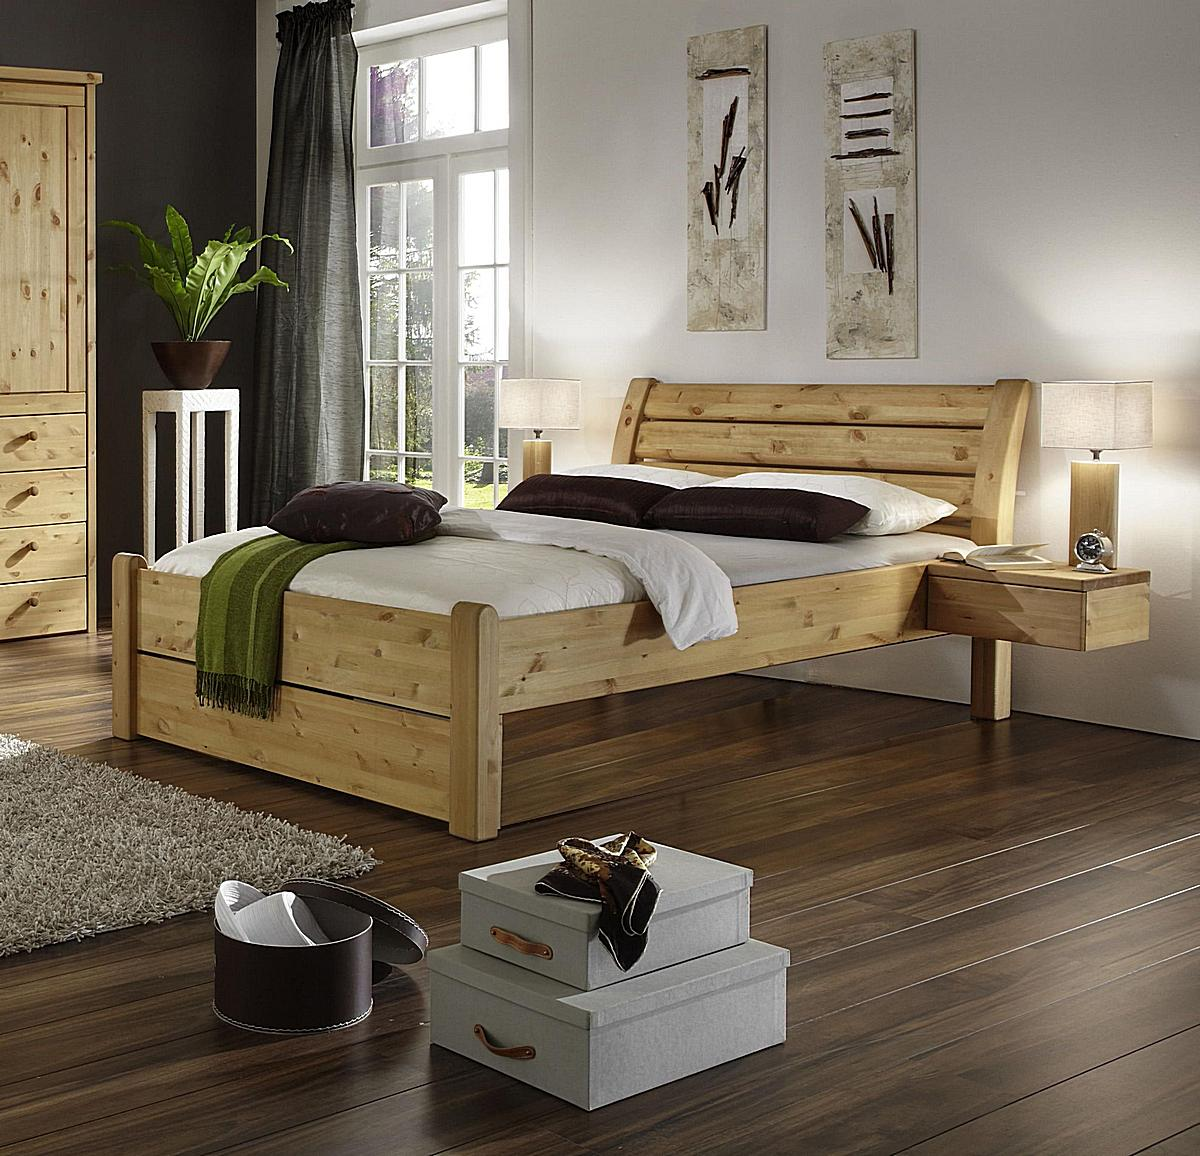 holzbett doppelbett kiefer massiv gelaugt ge lt rauna niedriges fu teil. Black Bedroom Furniture Sets. Home Design Ideas